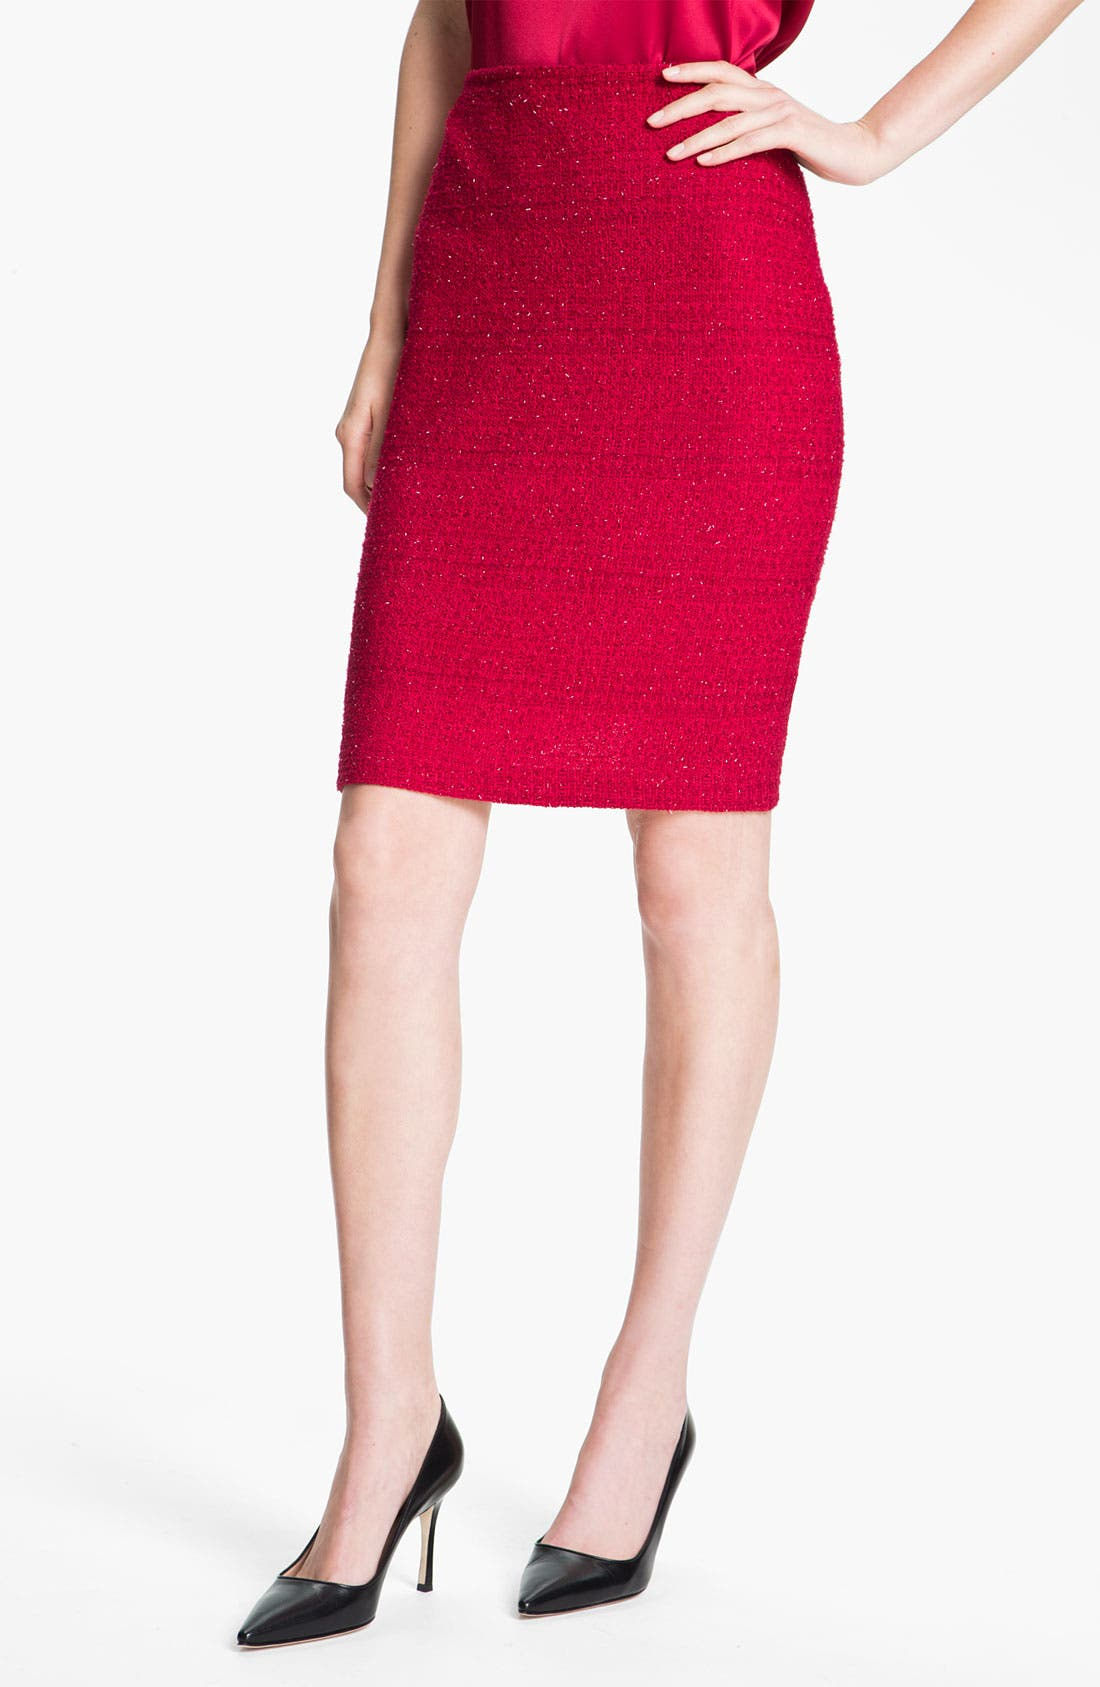 Alternate Image 1 Selected - St. John Collection 'Berry' Skirt